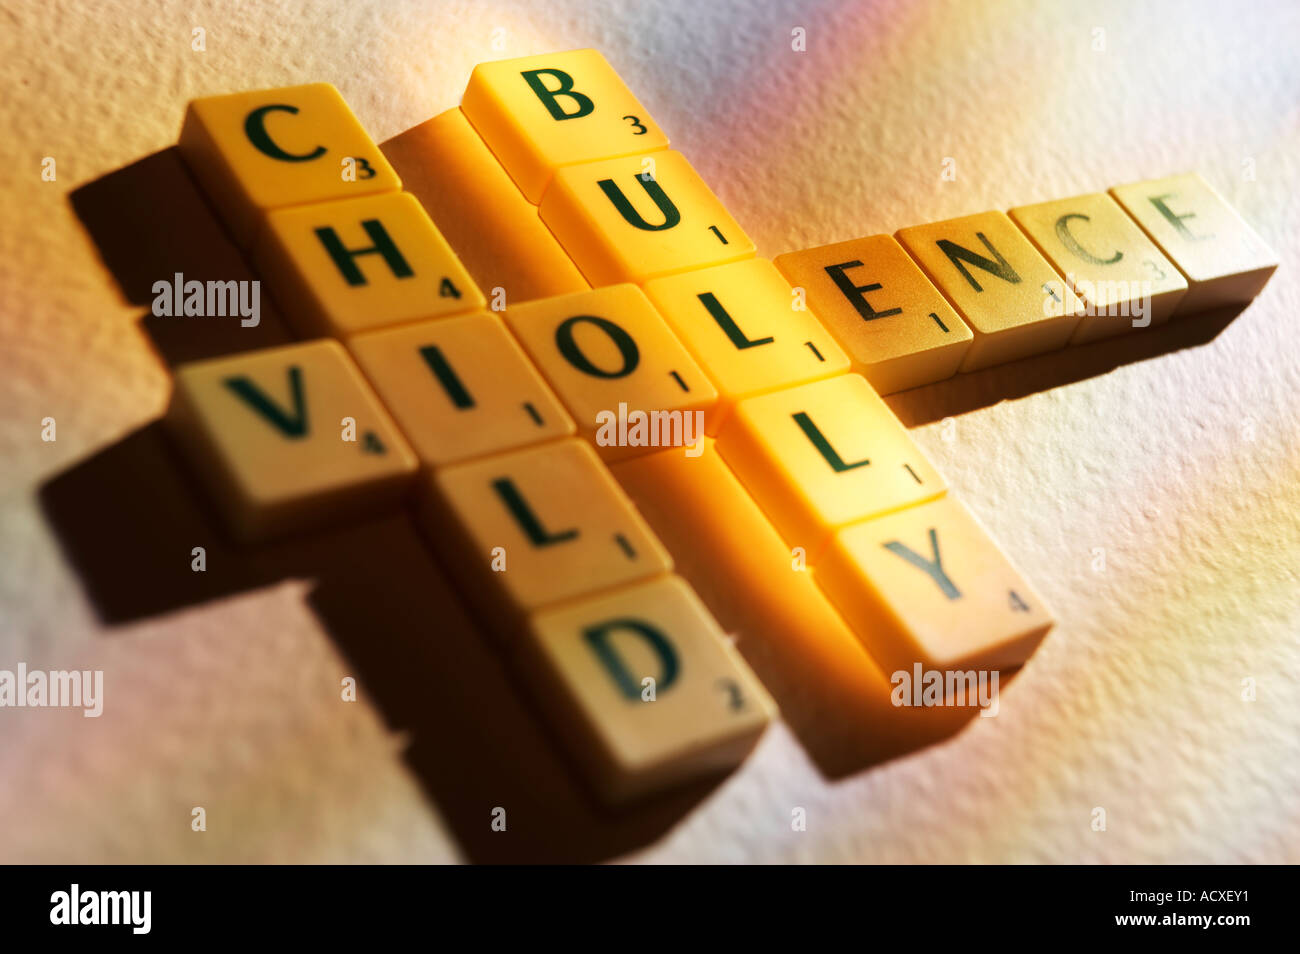 Worksheet Child Spelling scrabble board game letters spelling the words child bully violence